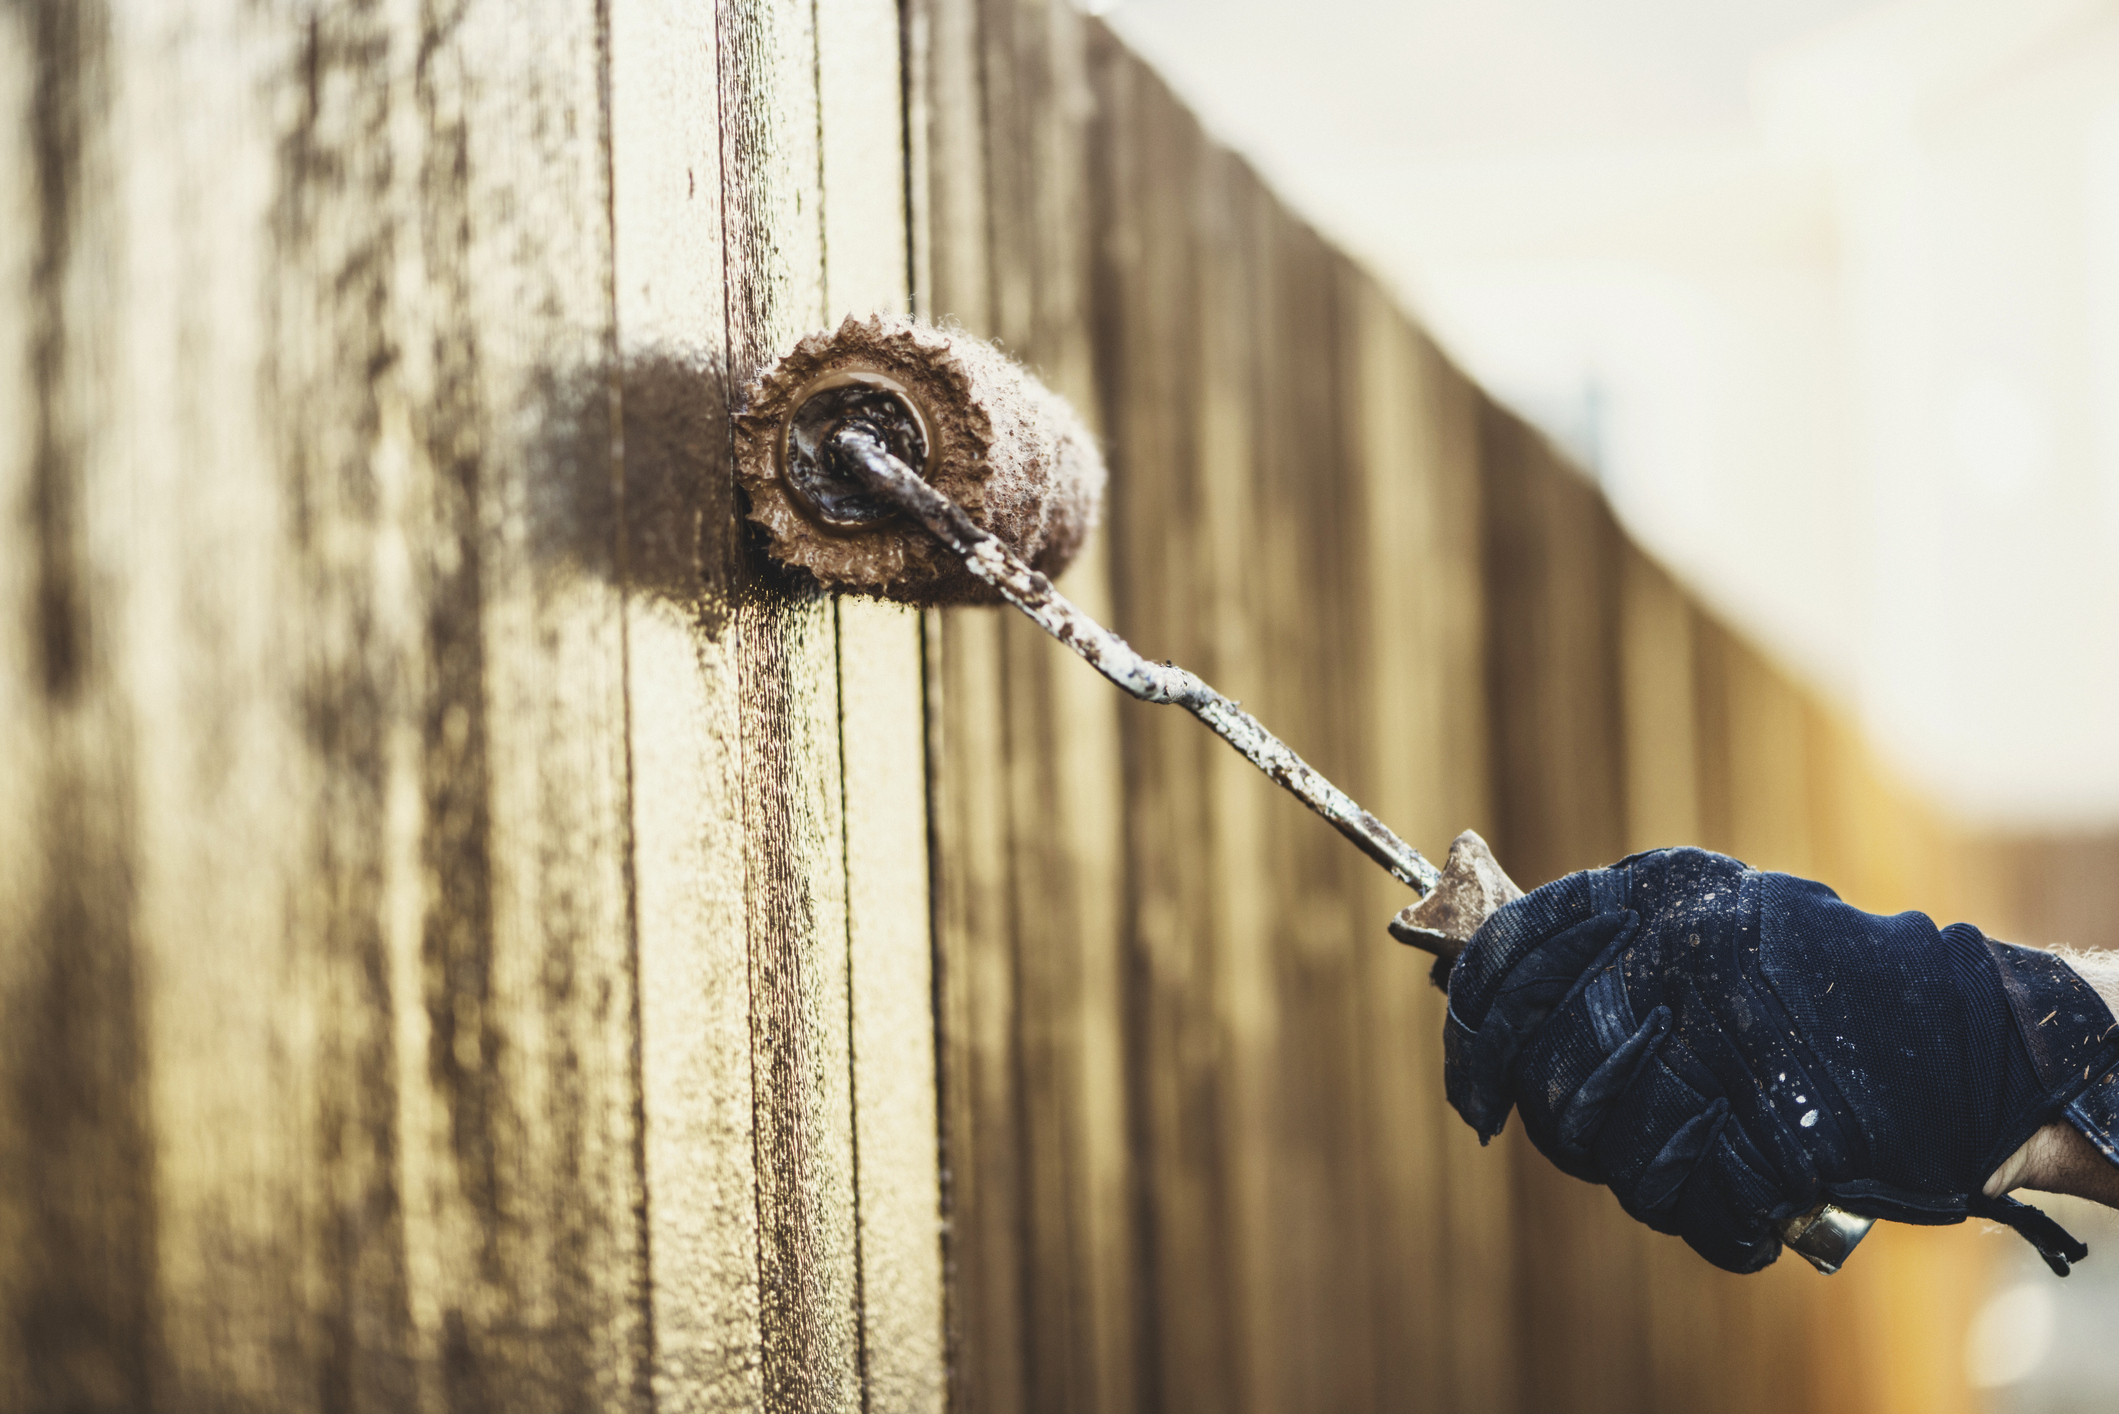 Staining a brand new fence